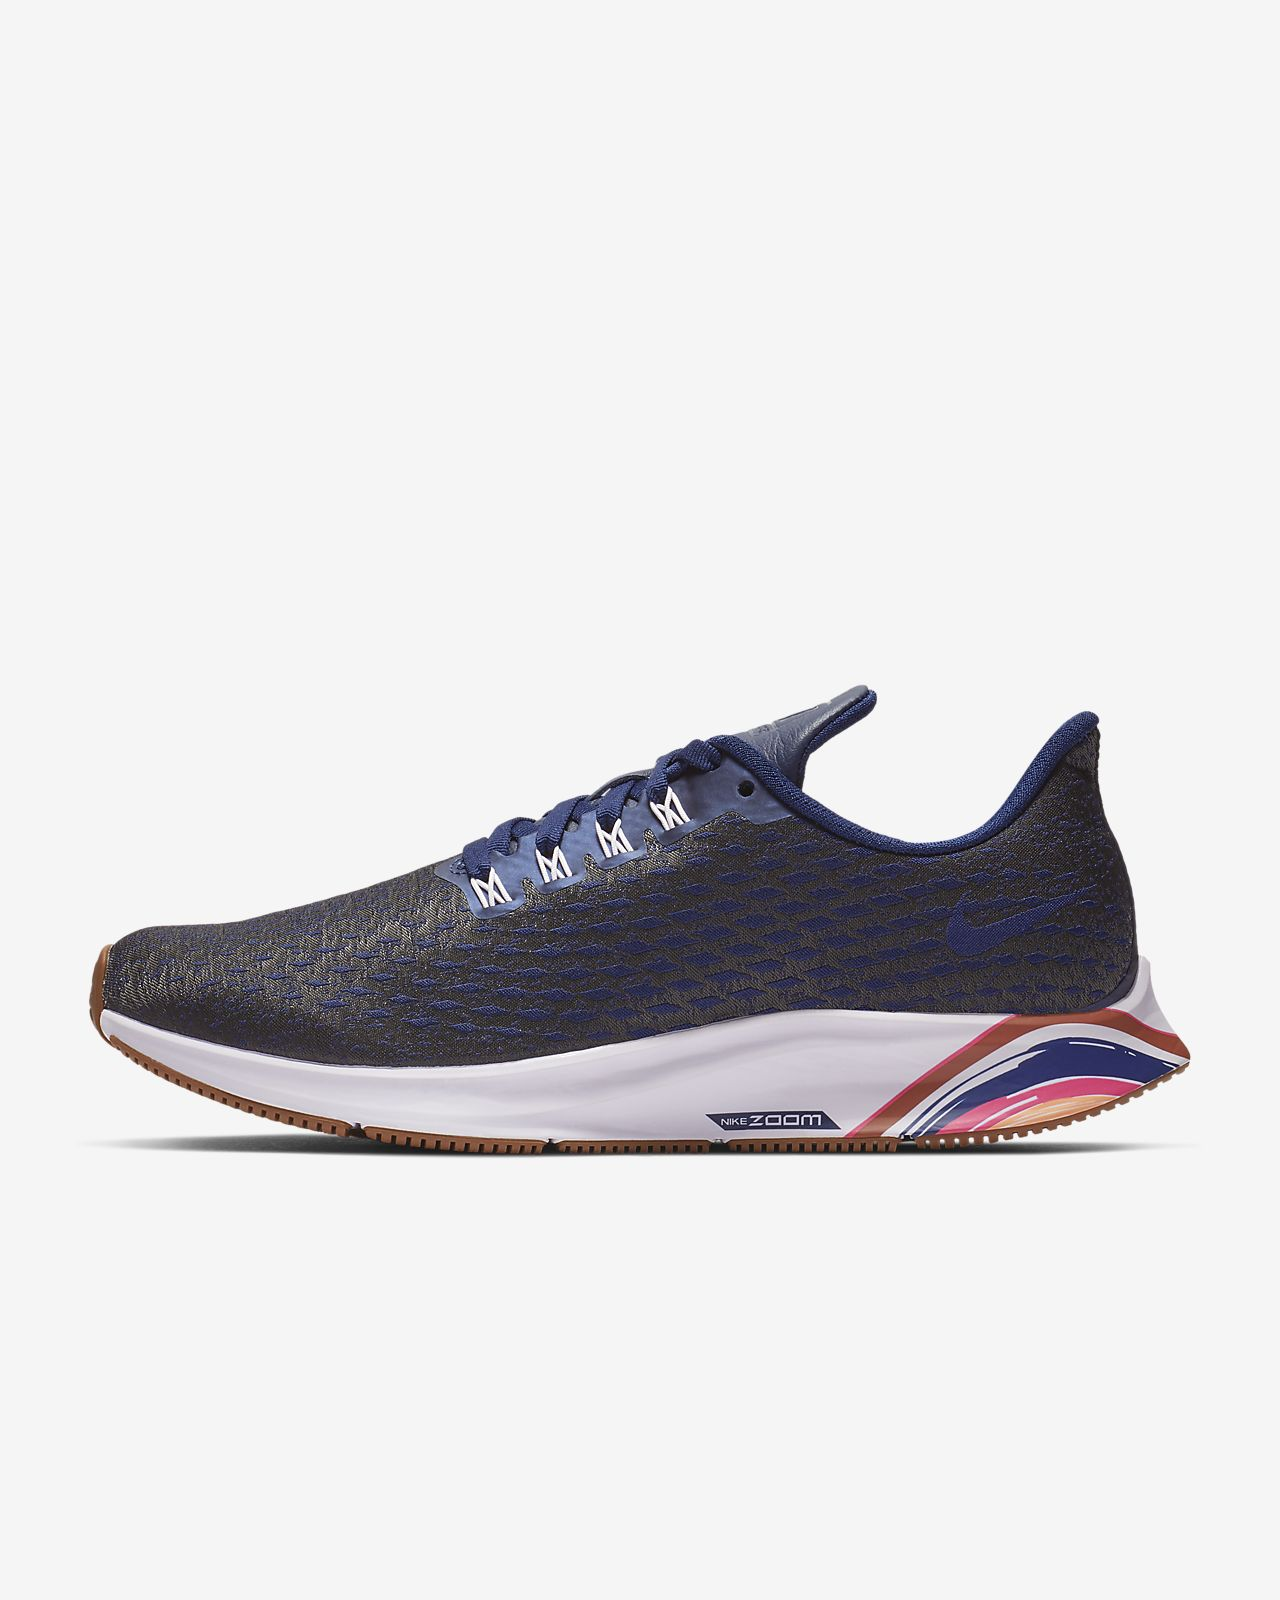 Nike Air Zoom Pegasus 35 Premium Women's Running Shoe